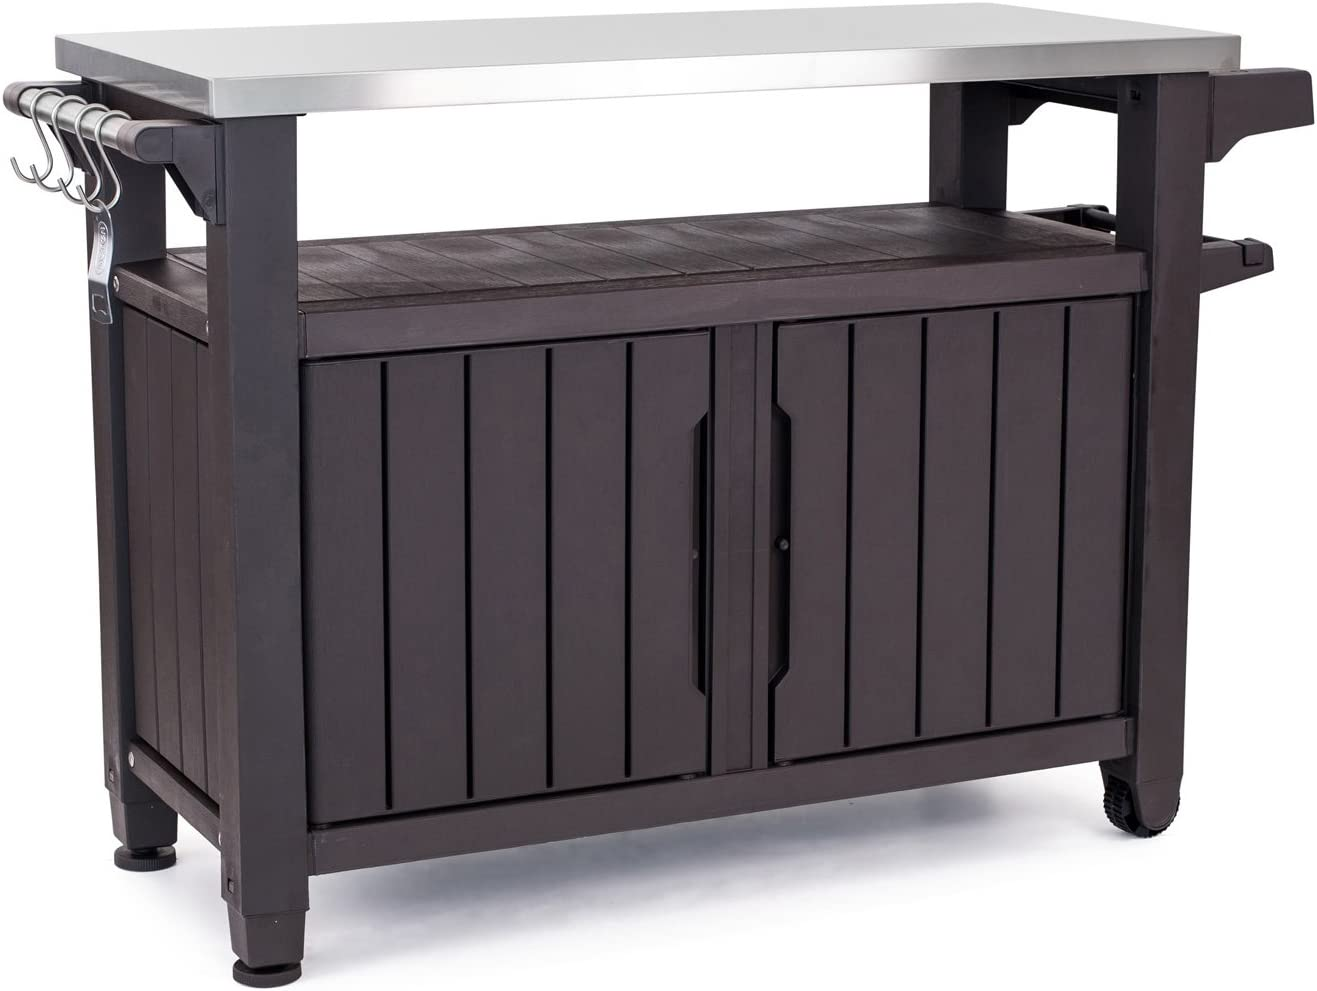 Keter Unity XL Portable Outdoor Table and Storage Cabinet with Hooks for Grill Accessories-Stainless Steel Top for Patio Kitchen Island or Bar Cart, Espresso Brown : Sports & Outdoors